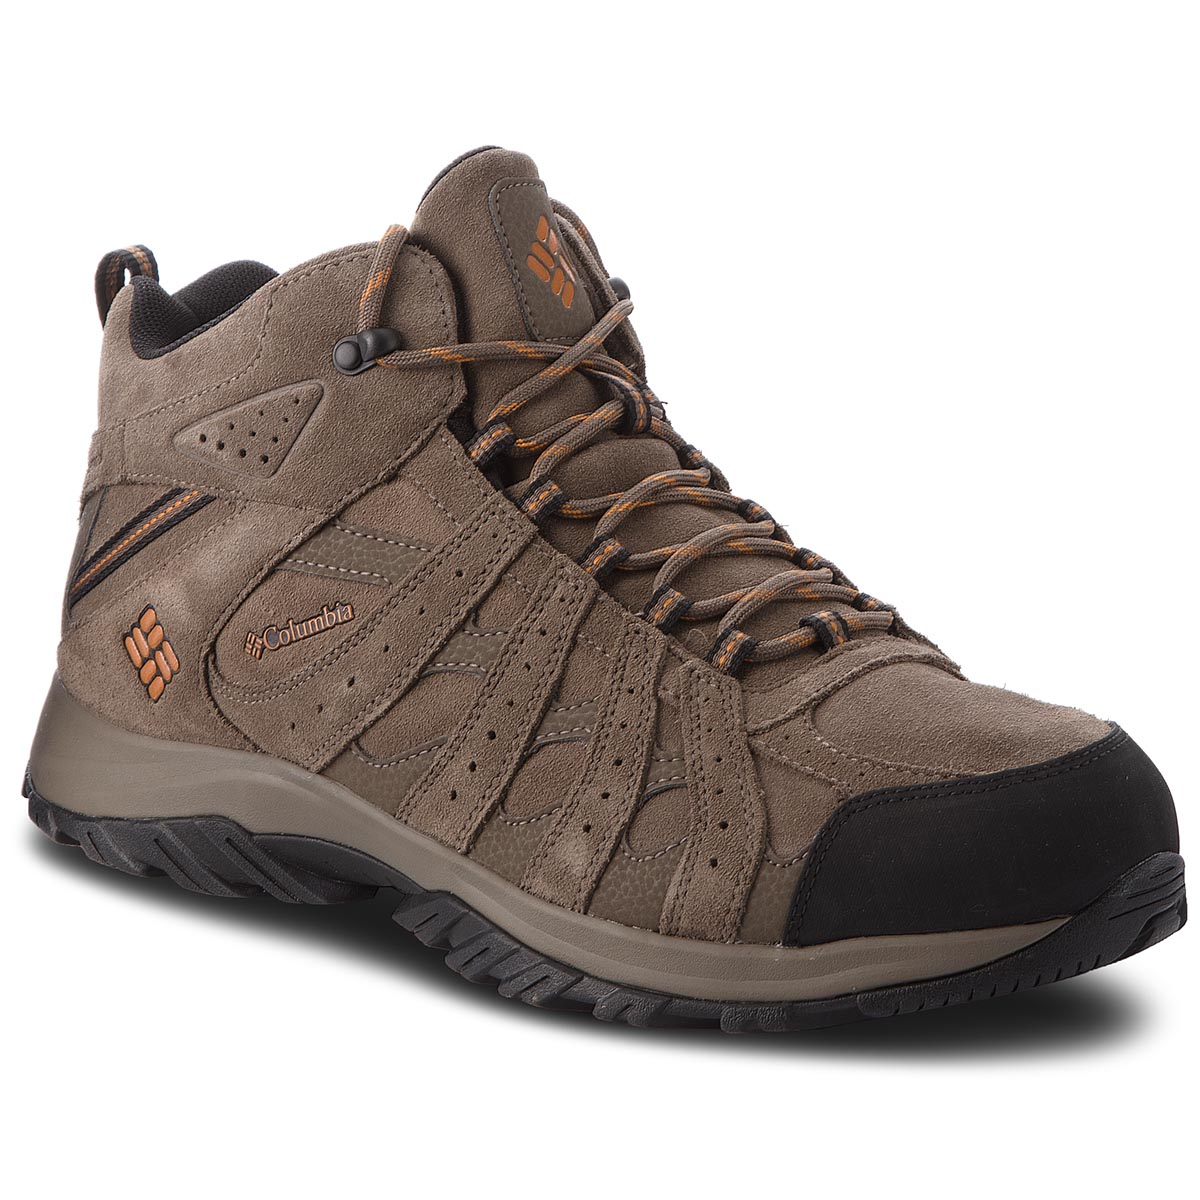 Trekkings COLUMBIA - Canyon Point Mid Leather YM5472 Mud/Bright Copper 255